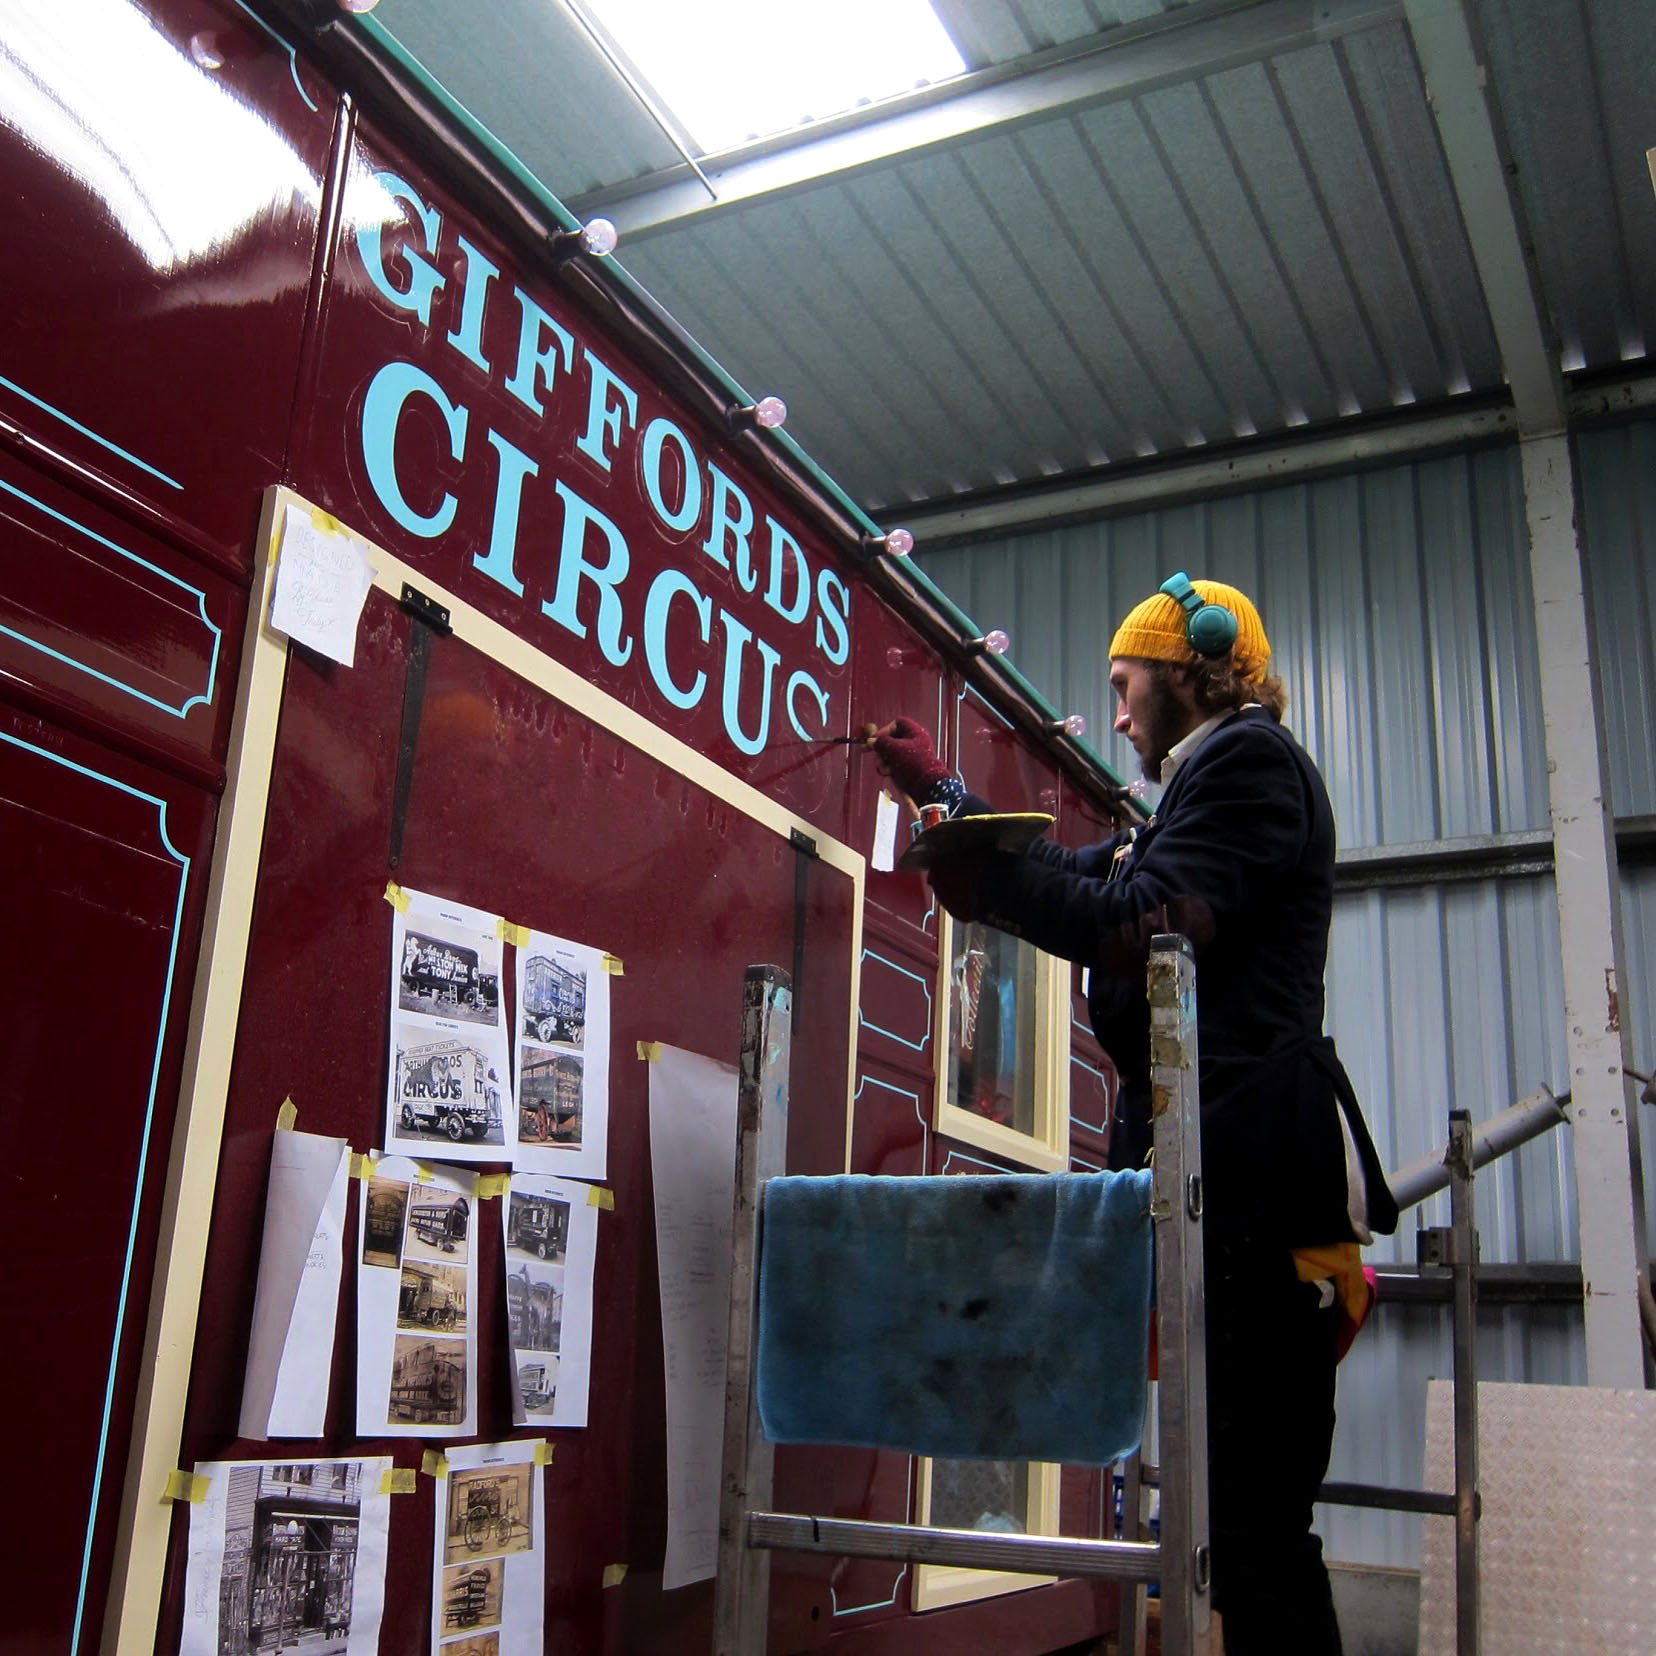 Gifford circus traditional lettering.jpg